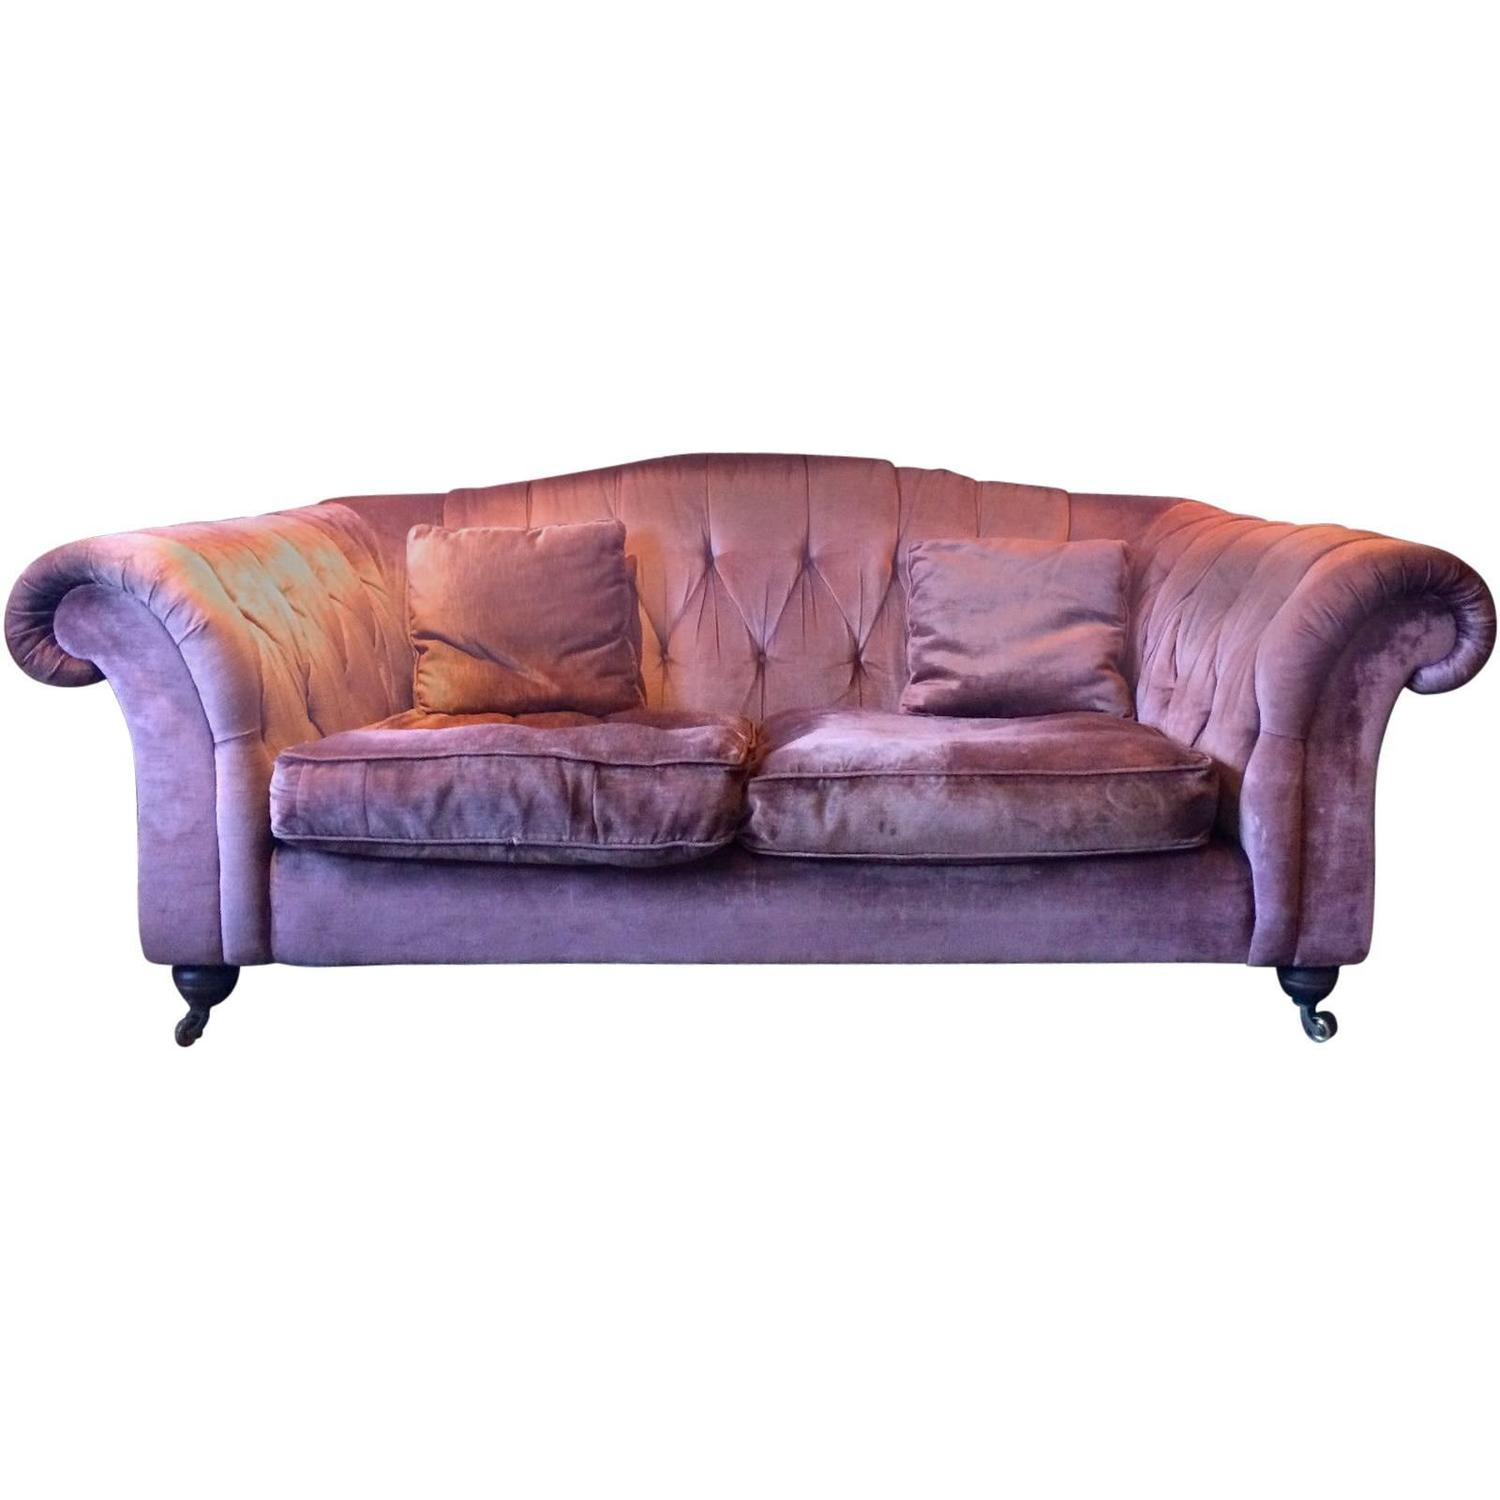 Liberty And Co Chesterfield Sofa Antique Style Button Back Velvet Casters  At 1stdibs